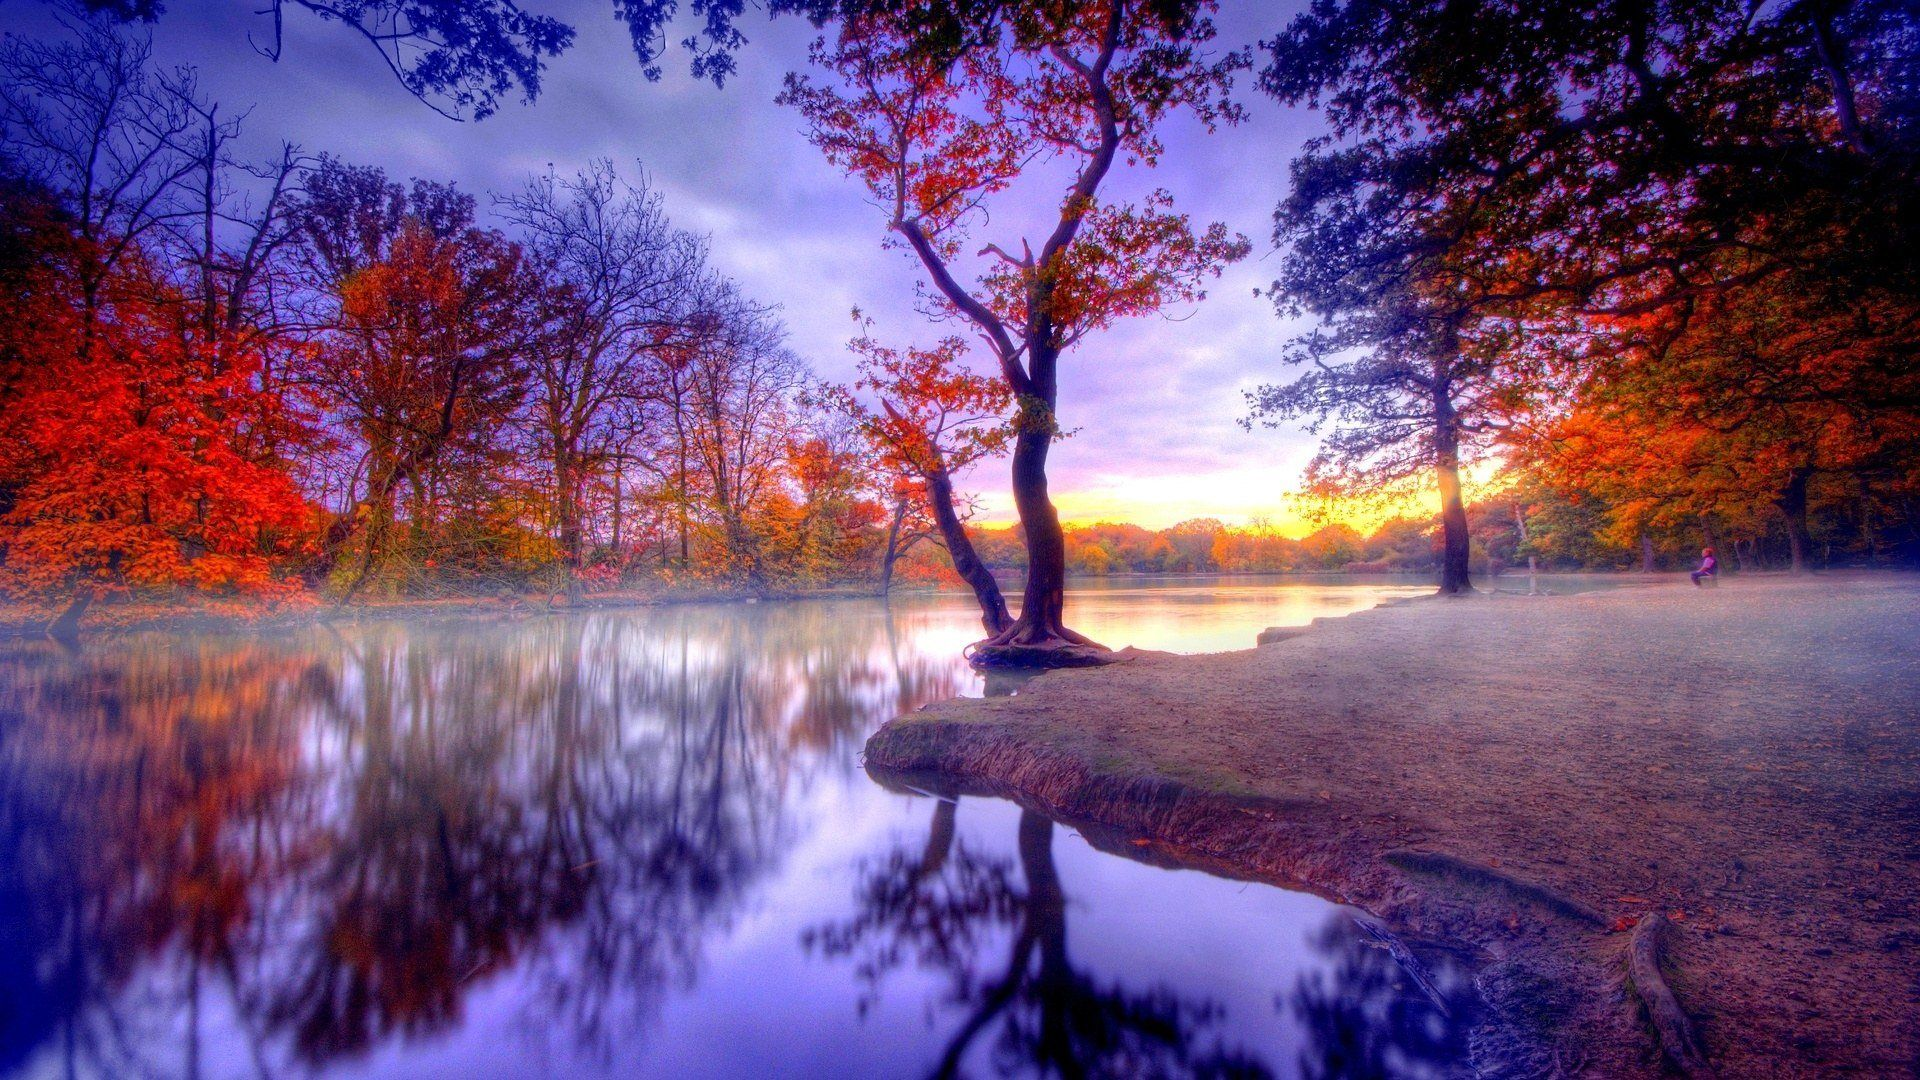 Autumn Landscape Full Hd Desktop Wallpapers 1080p Autumn Landscape Landscape Wallpaper Scenery